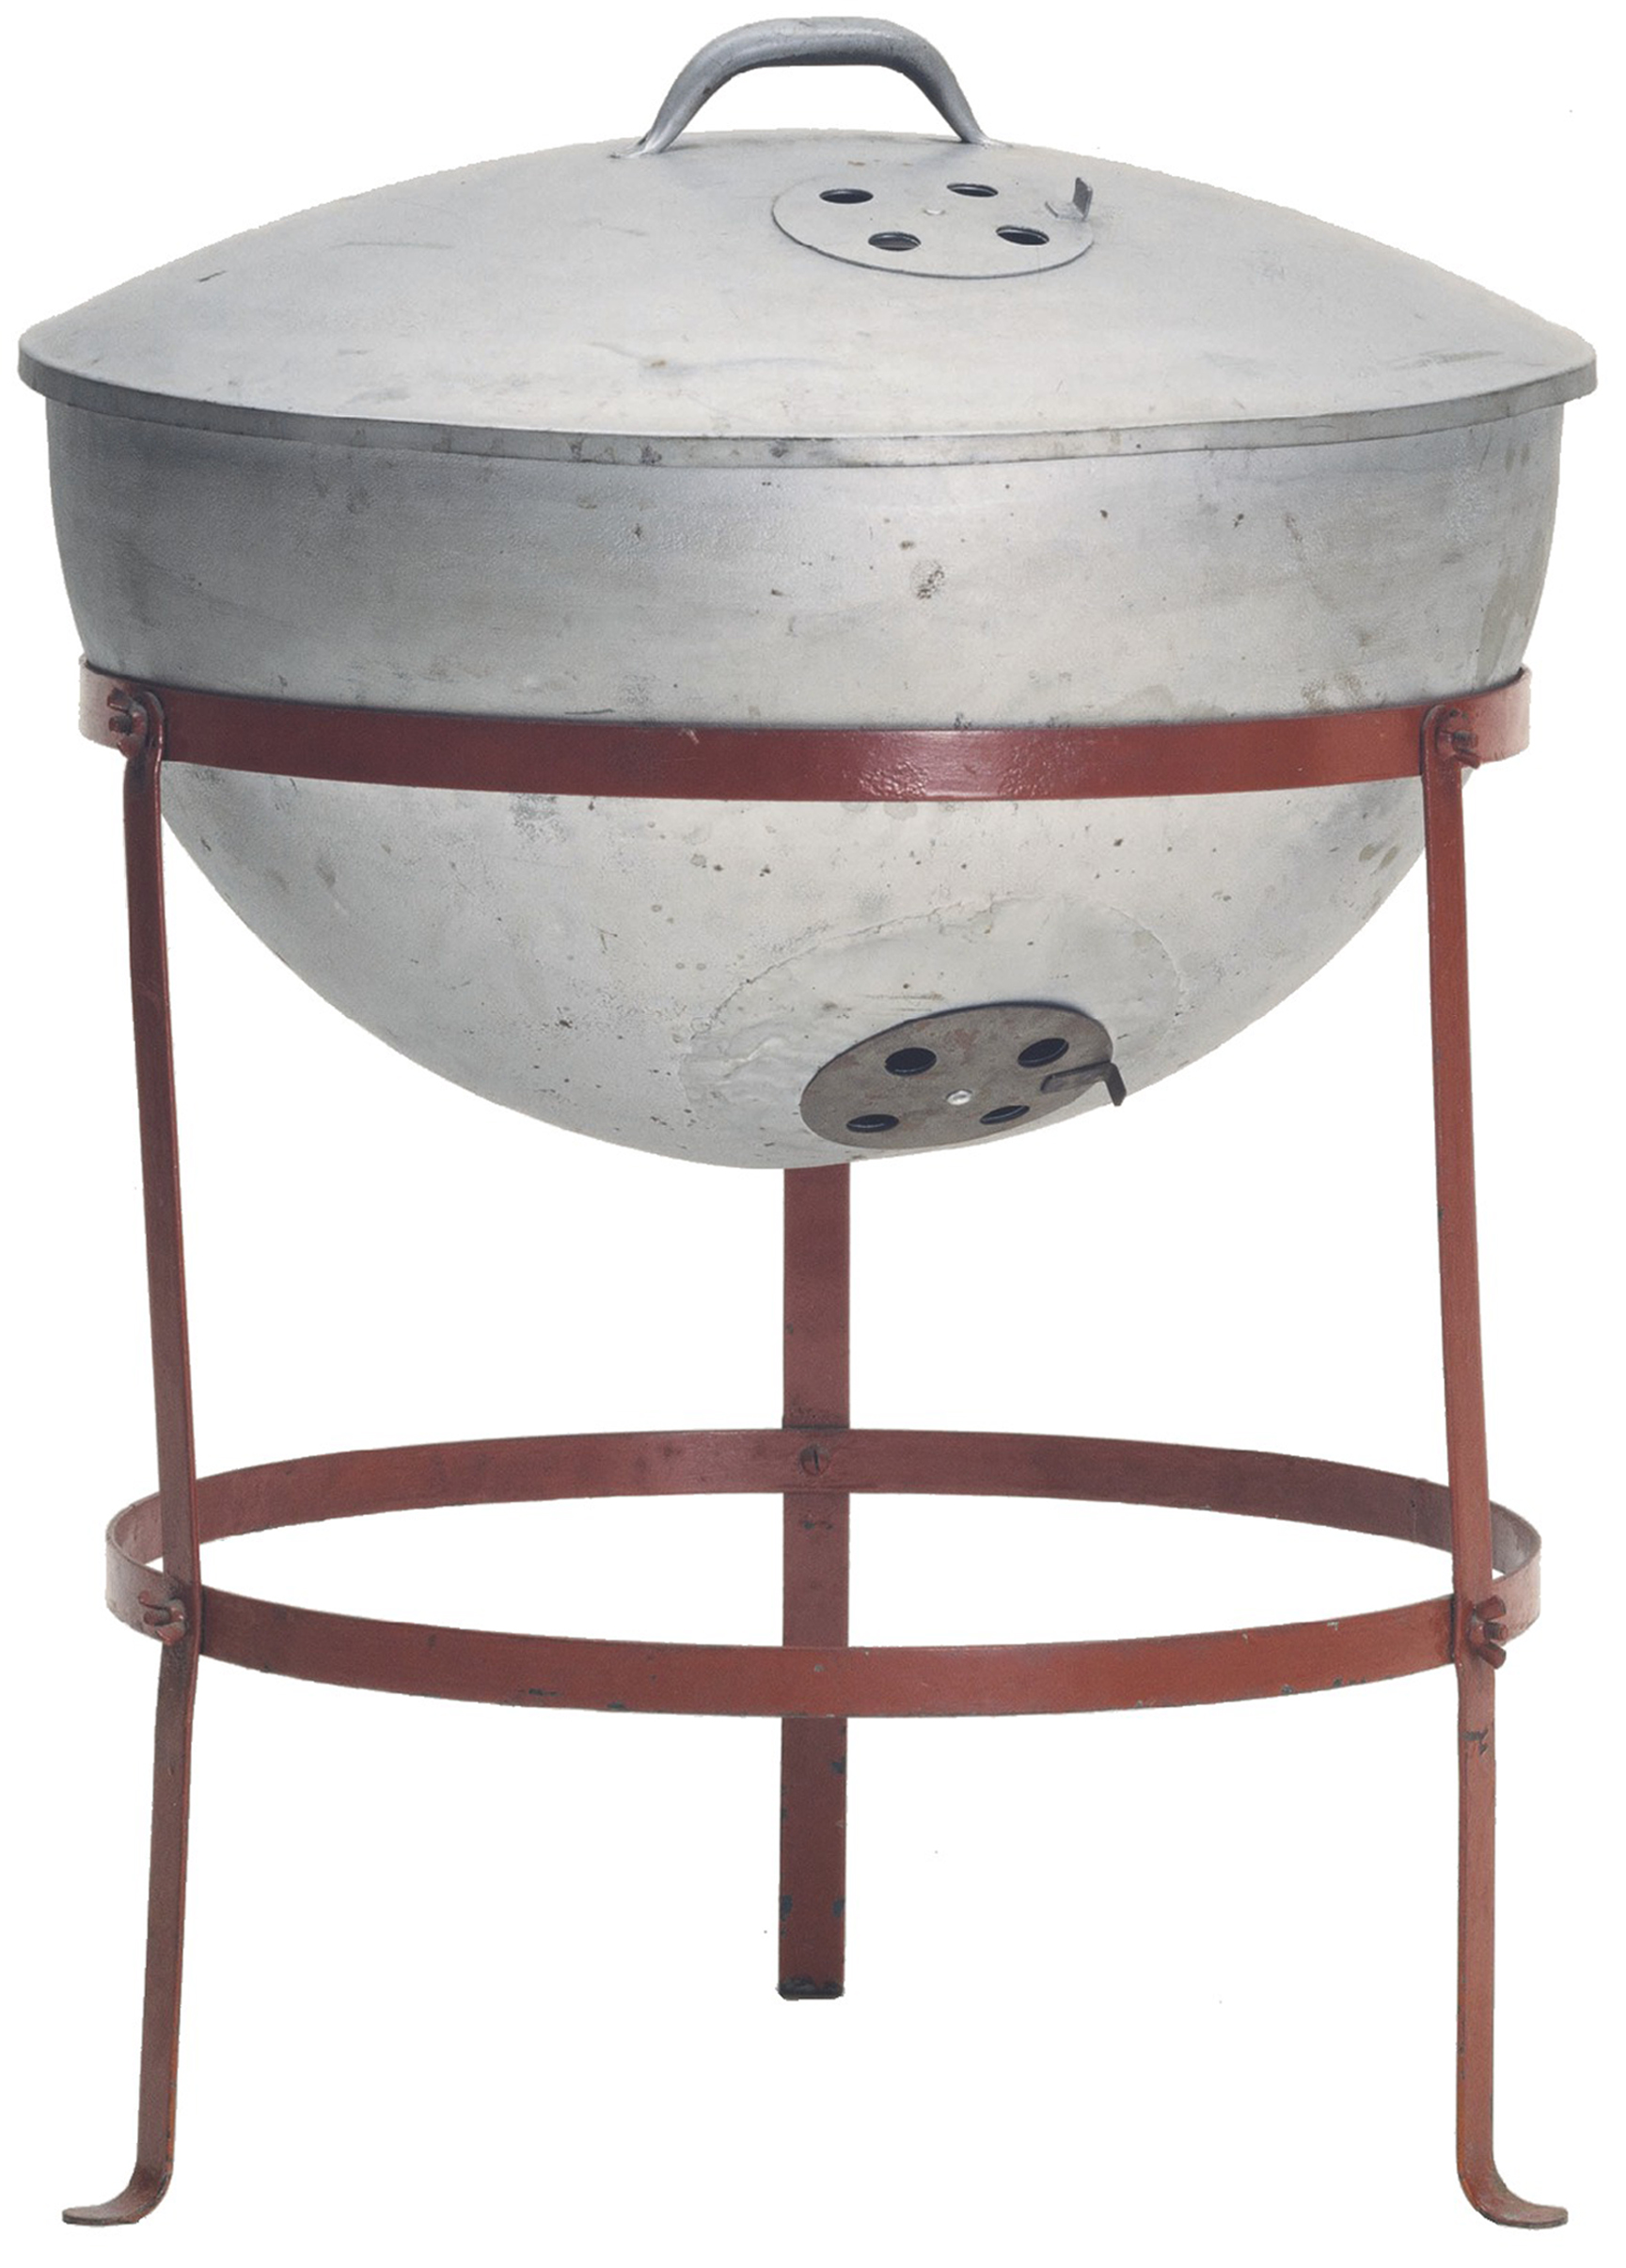 The original Kettle from 1952 (Weber/PA